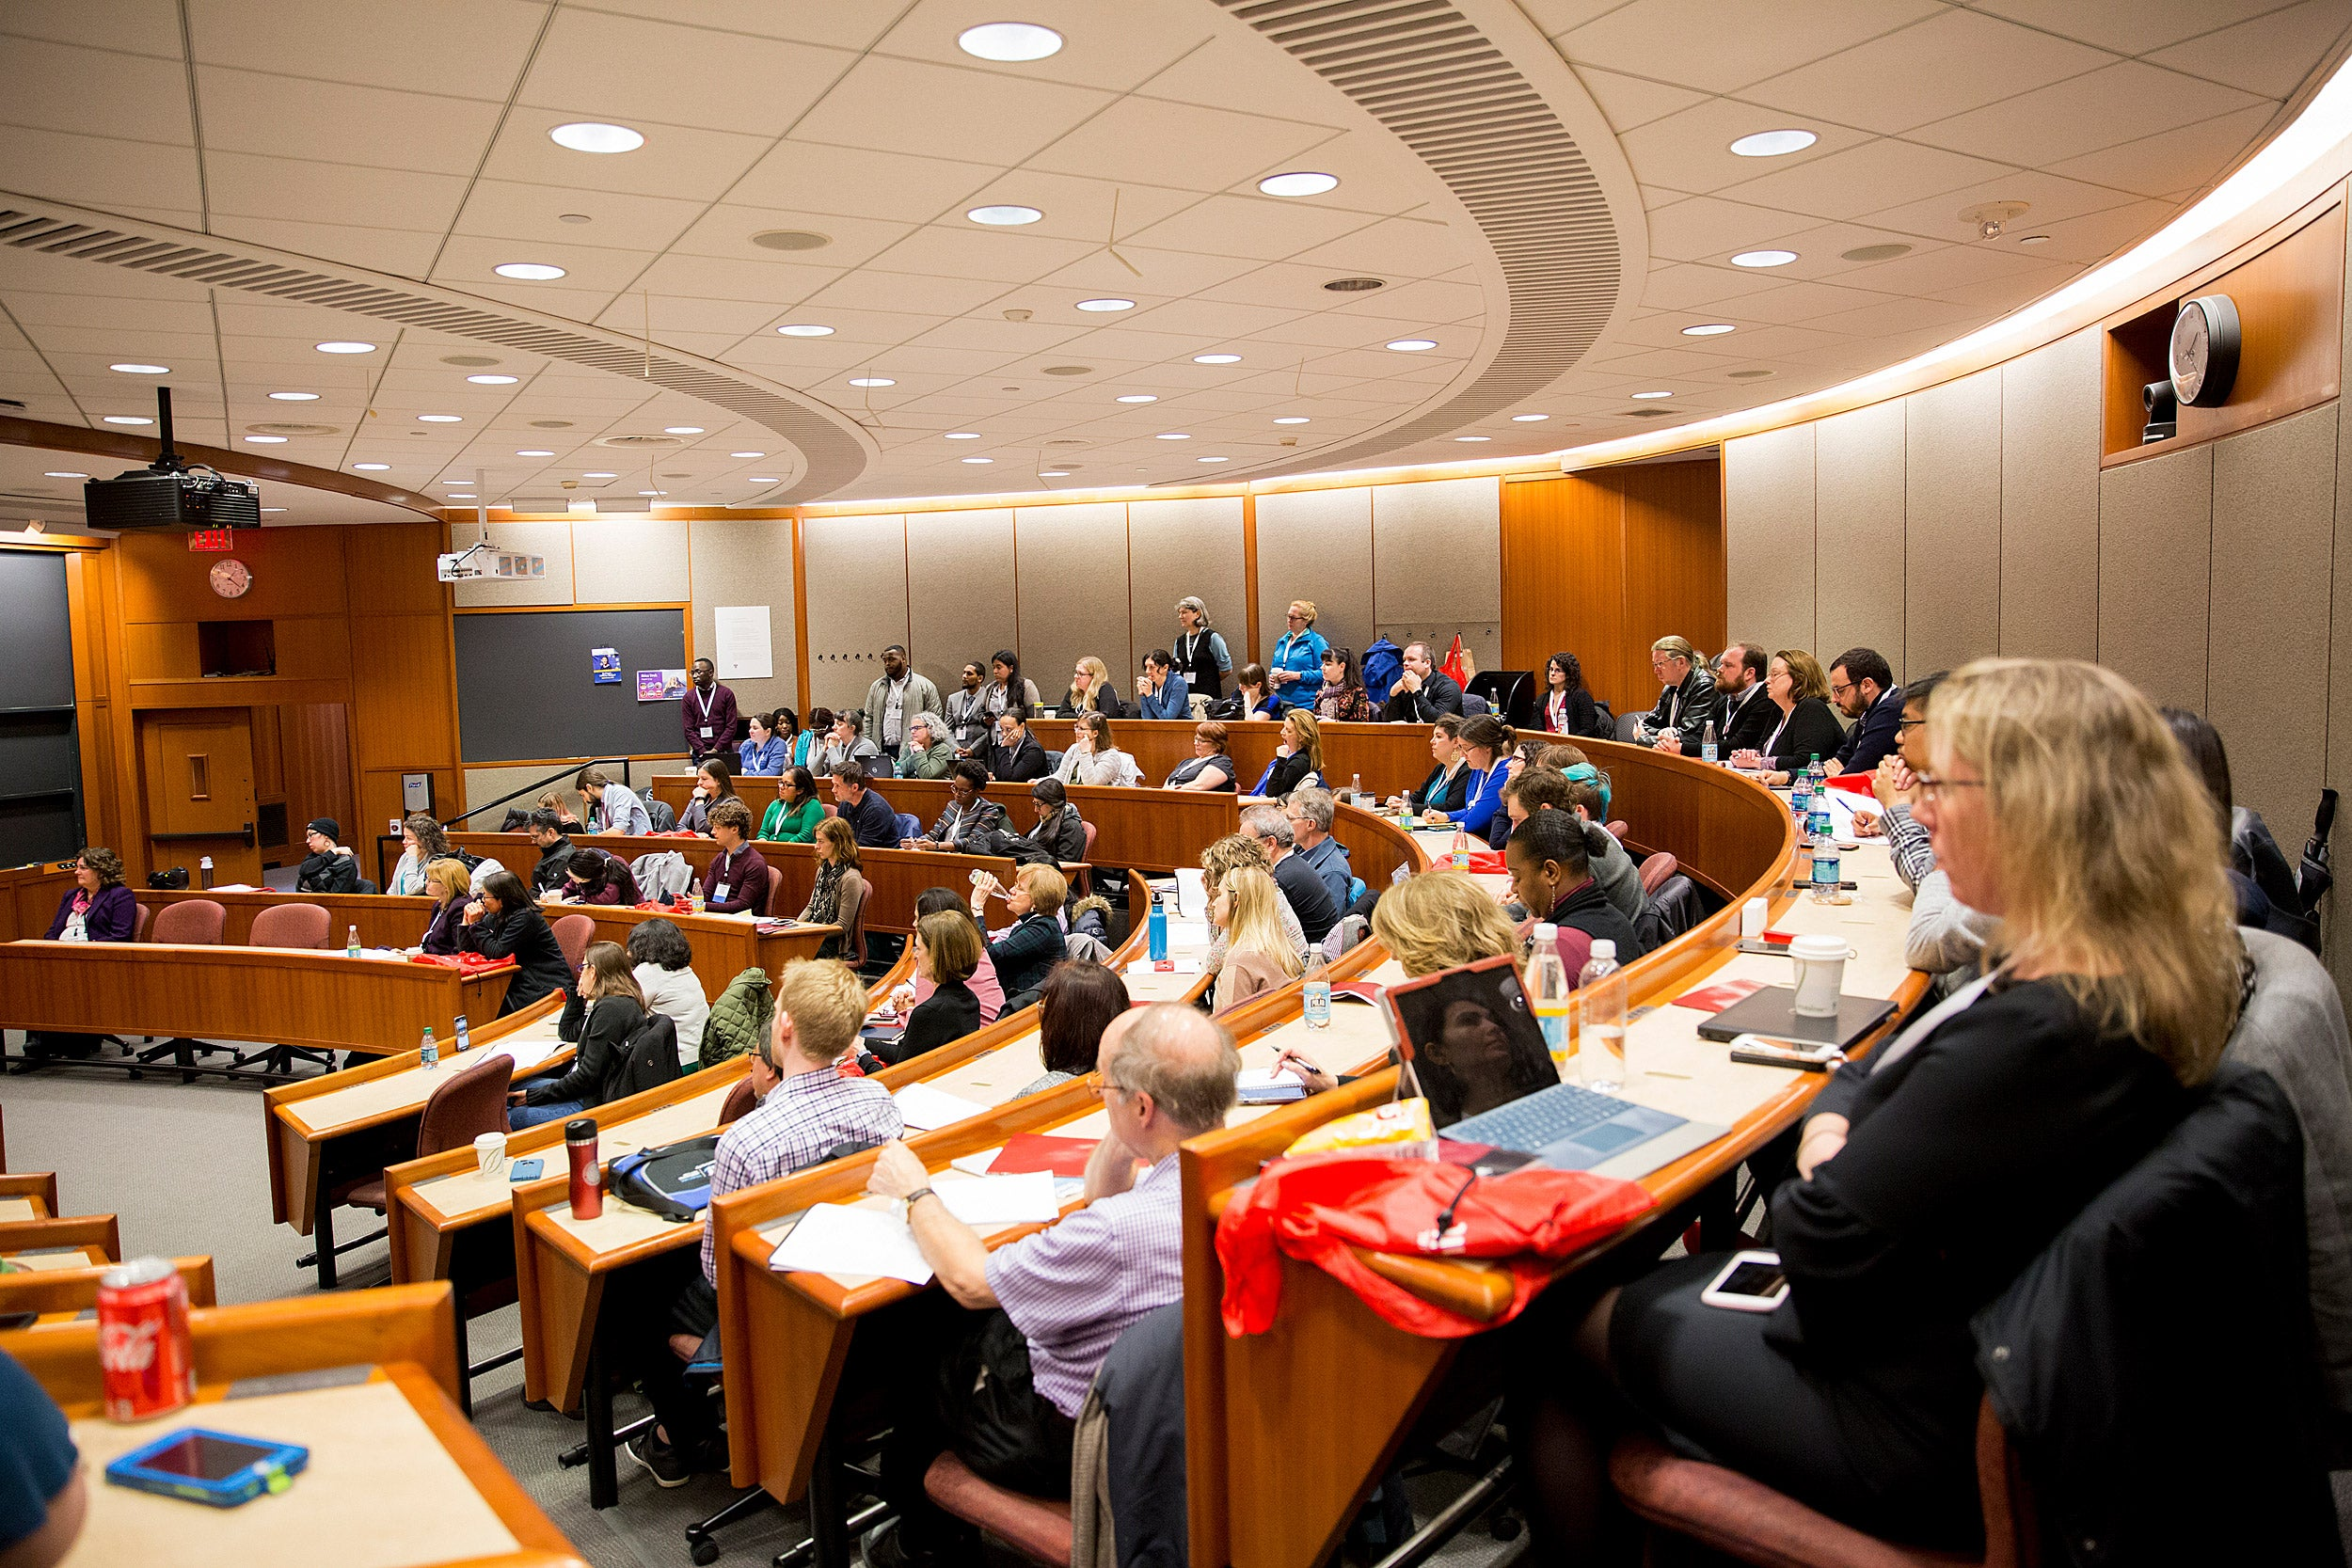 Harvard's 9th annual IT Summit parses data about data